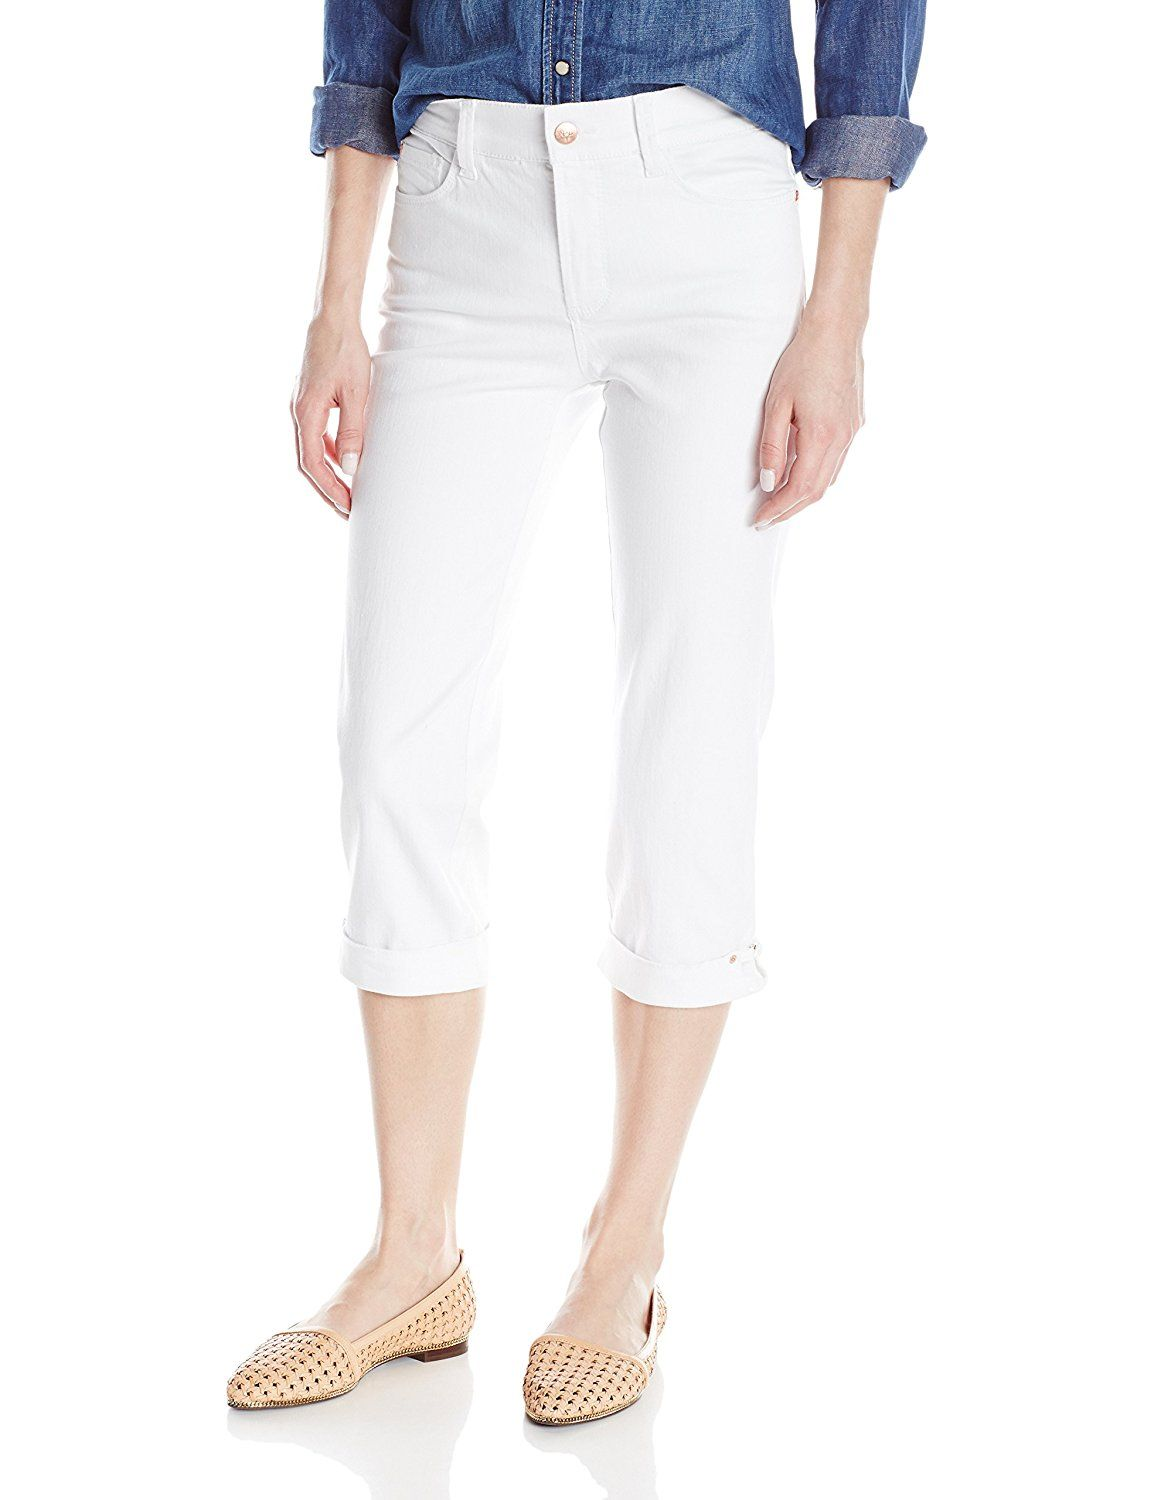 1e23038a526 NYDJ Women s Ariel Crop Jeans-Hem Novelty Clasp     This is an Amazon  Affiliate link. Check out the image by visiting the link.